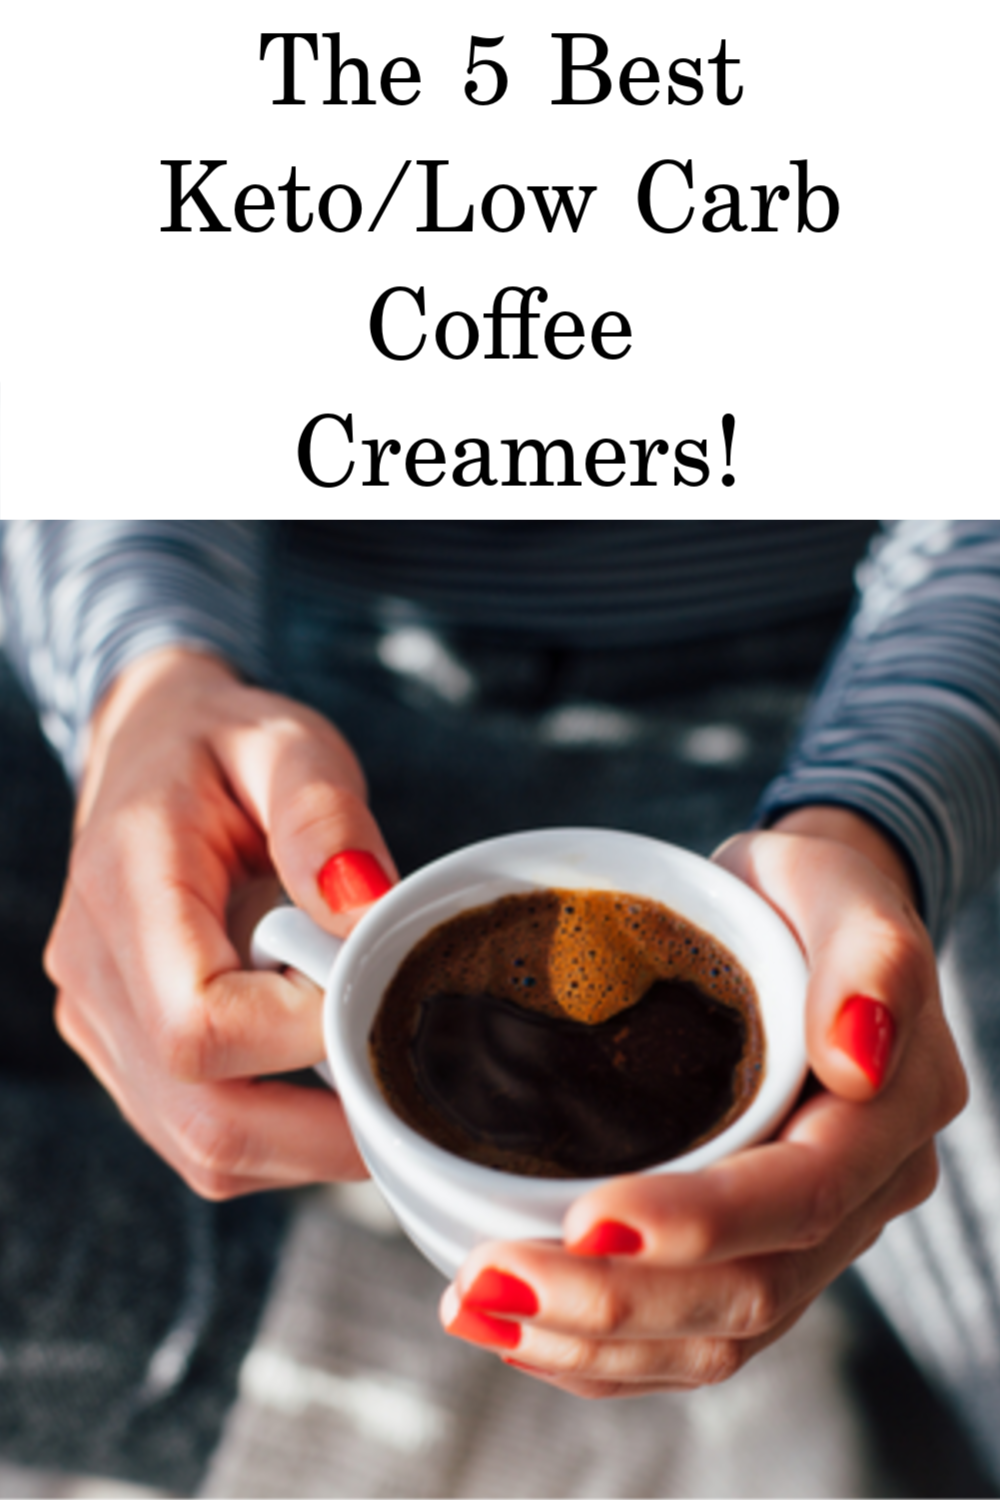 Low Carb Coffee Creamer: Low in Carbs, High in Flavor | Low carb coffee creamer, Coffee creamer ...